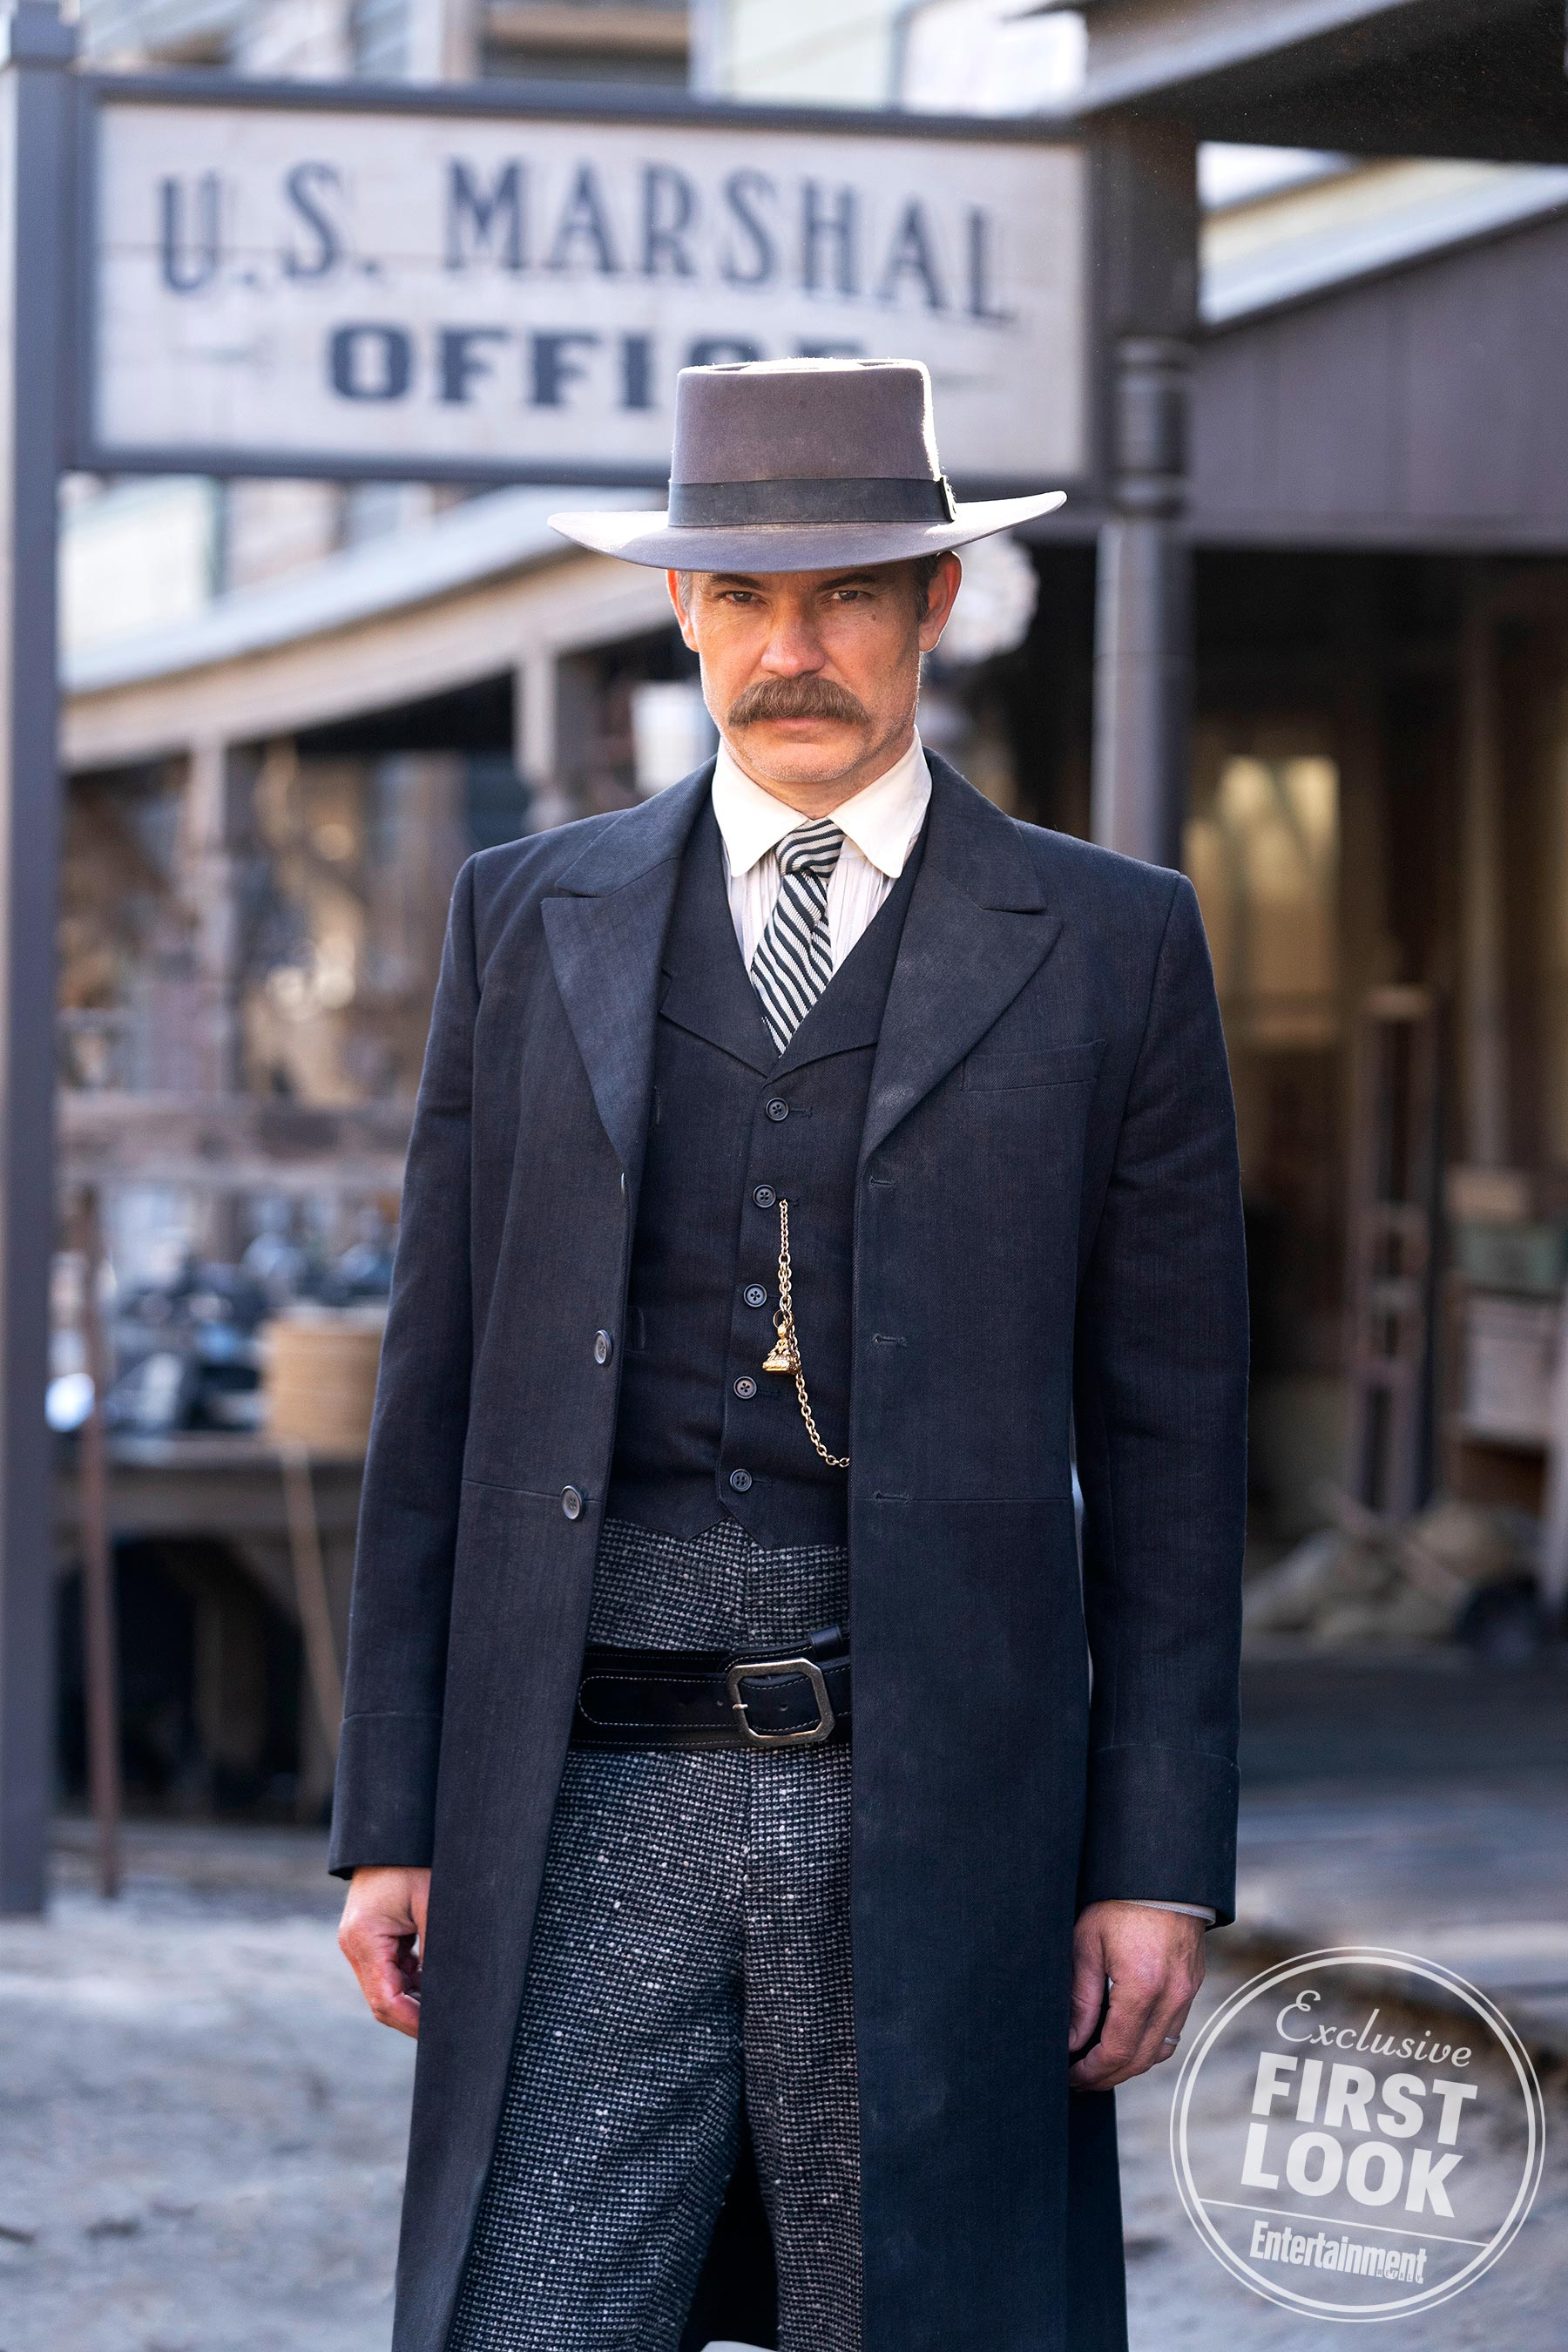 official-photos-released-for-hbos-long-awaited-deadwood-movie2